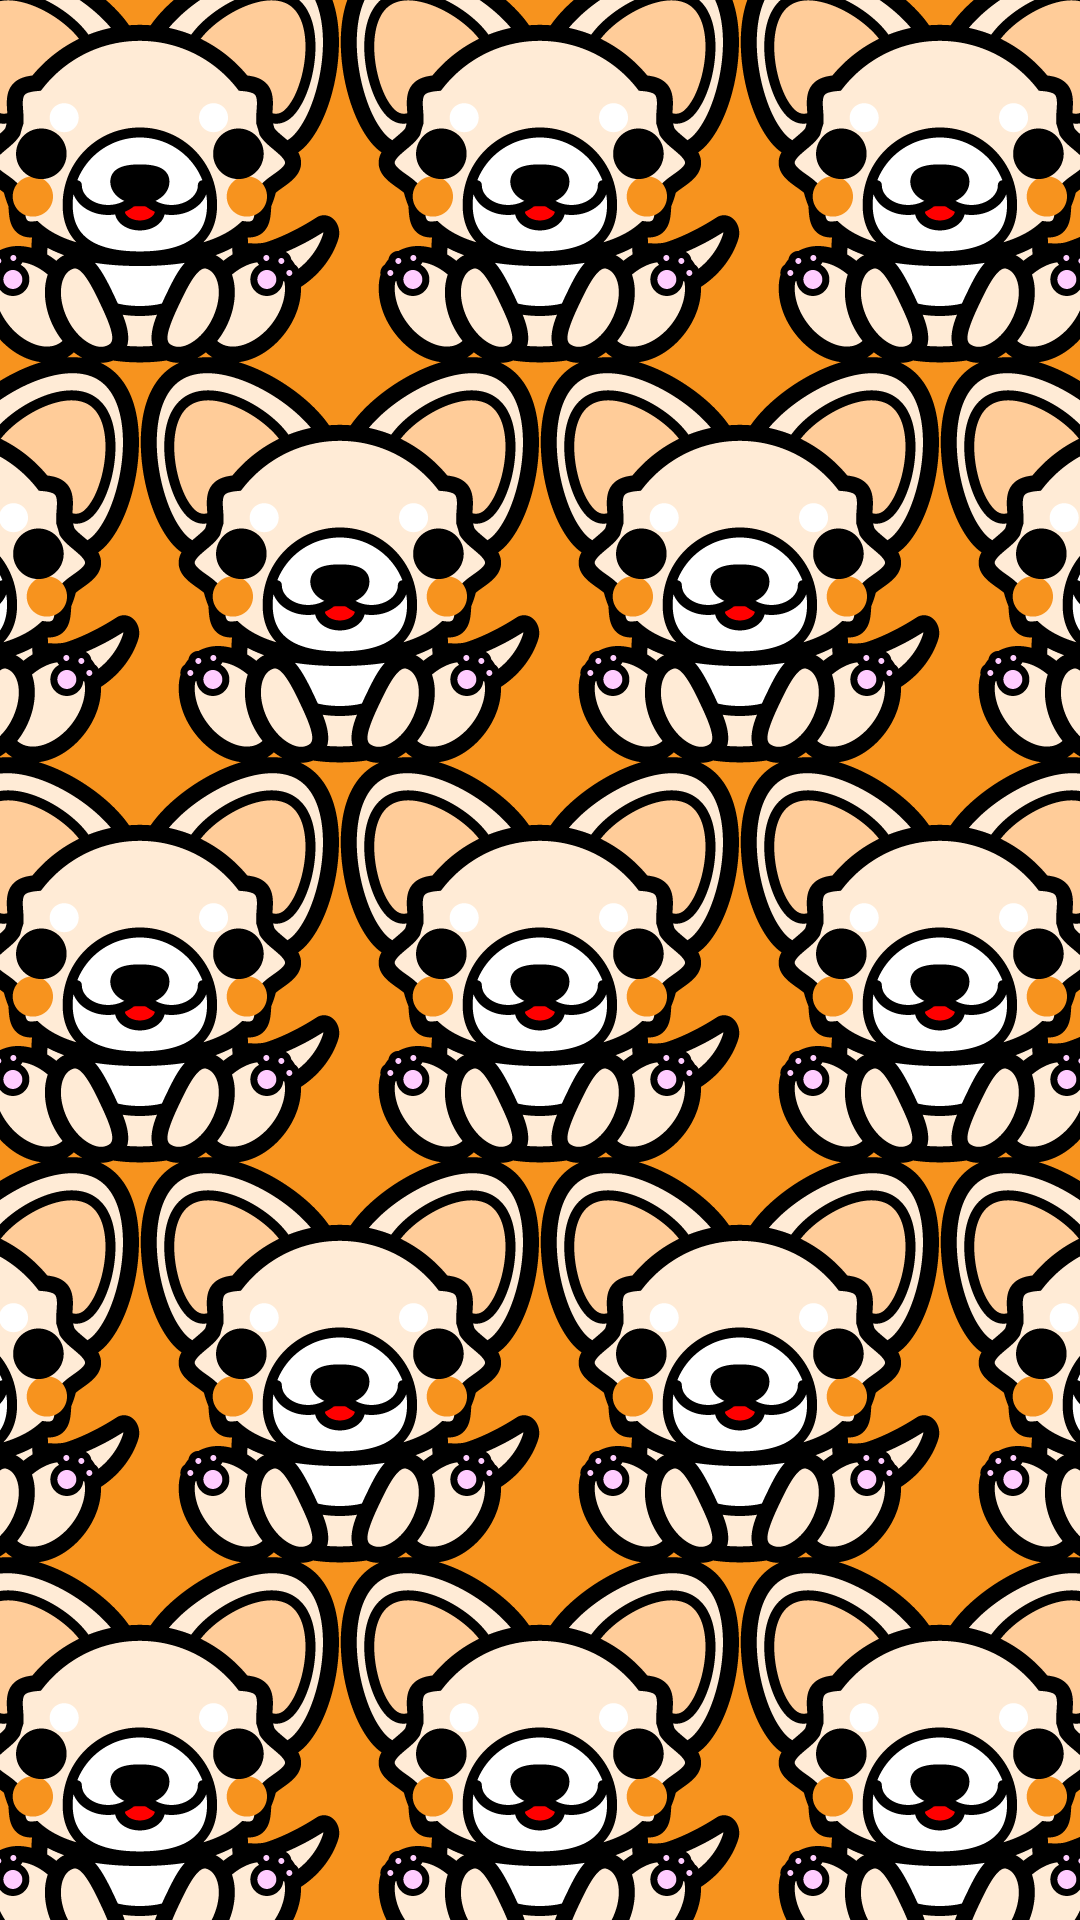 wallpaper4_sitchihuahua-fiill-orange-iphone